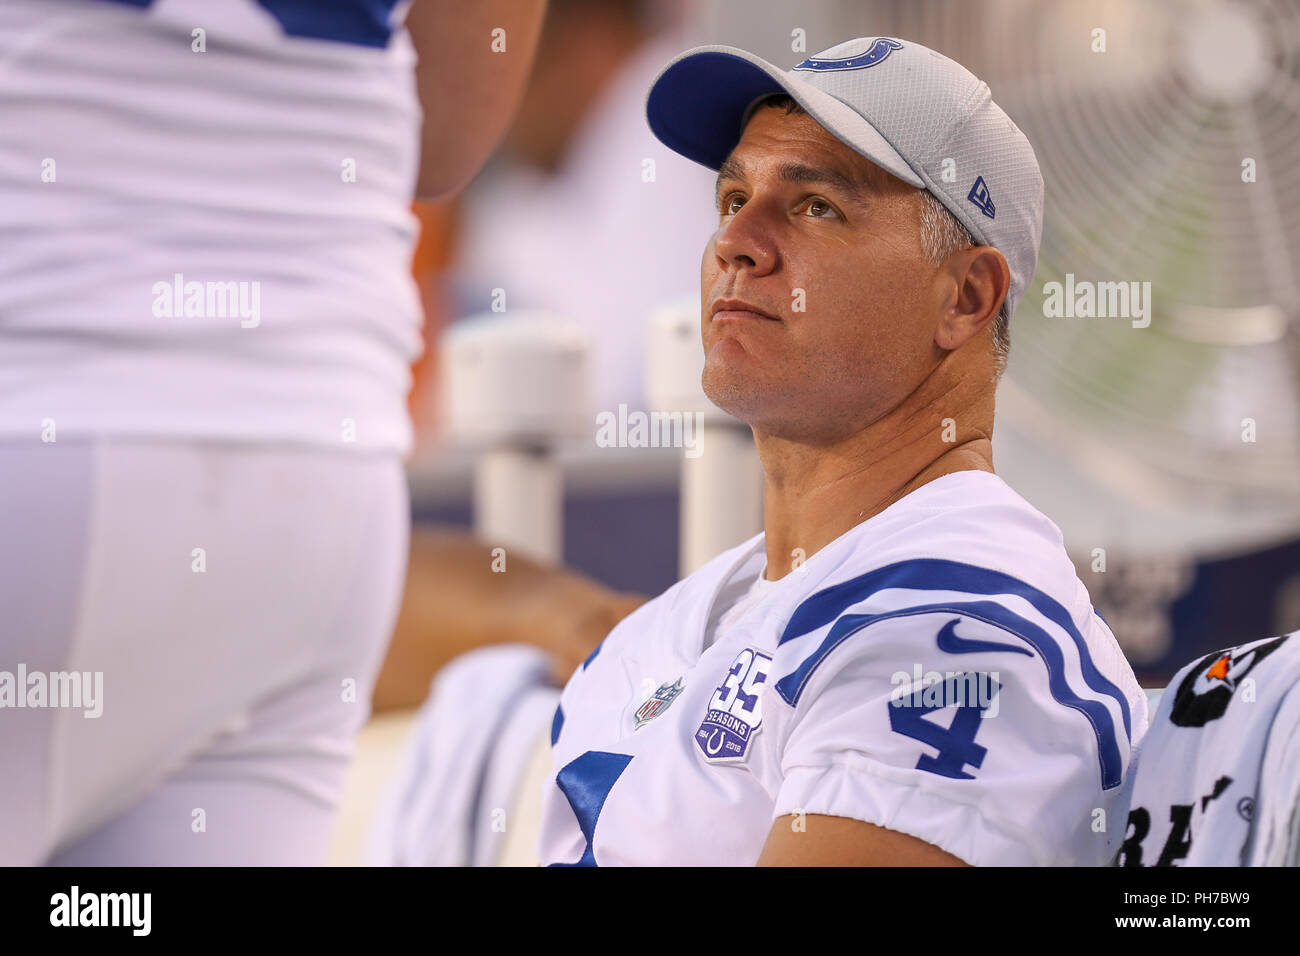 Cincinnati Ohio Usa August 30th 2018 Indianapolis Colts Kicker Adam Vinatieri 4 Looks On In A